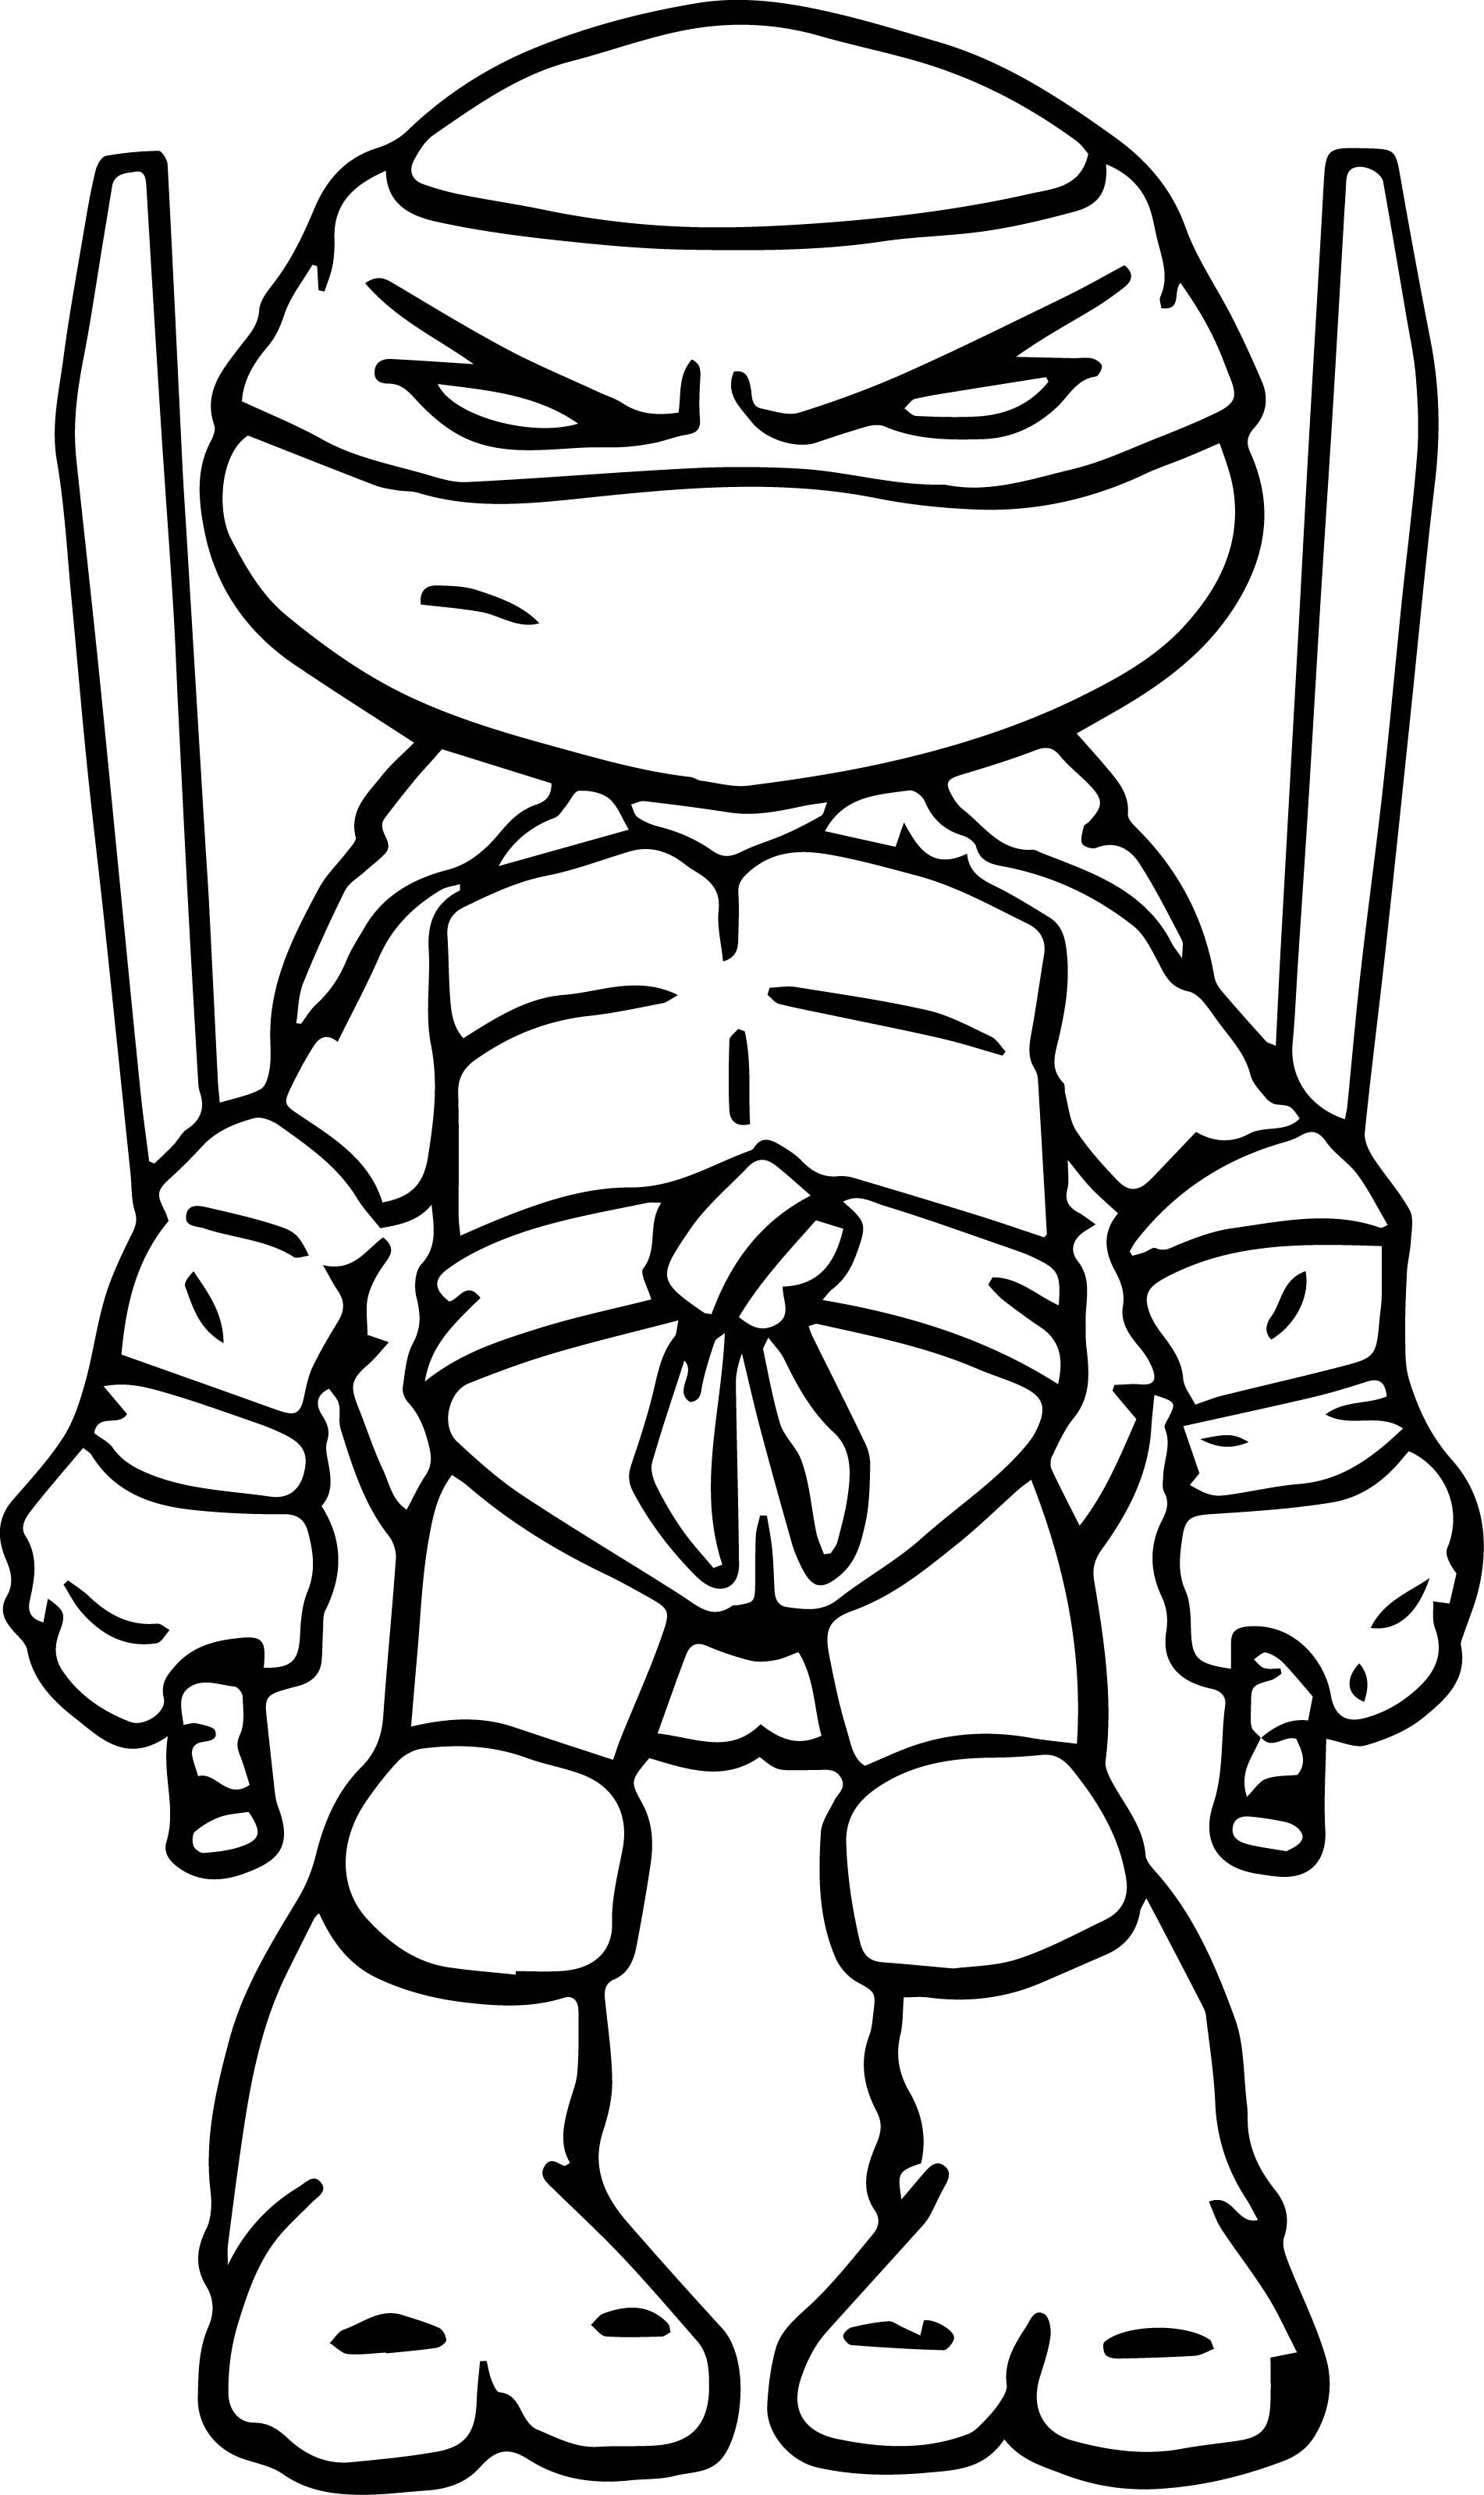 Coloring Pages Ninja Turtles : Ninja turtles art coloring page tmnt party pinterest